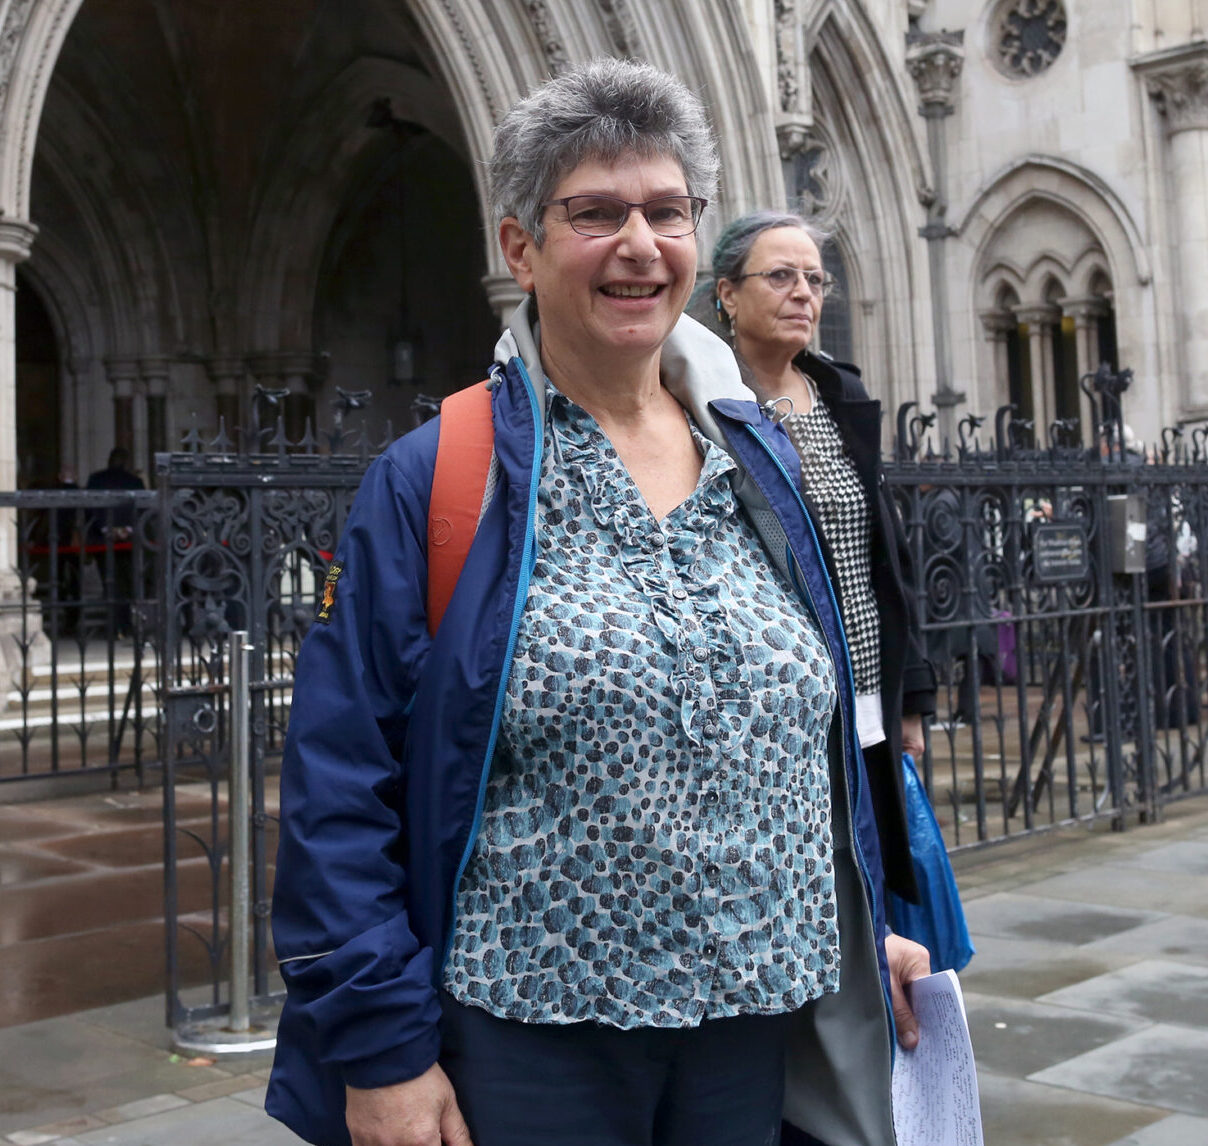 Insulate Britain leader vows to flout court order